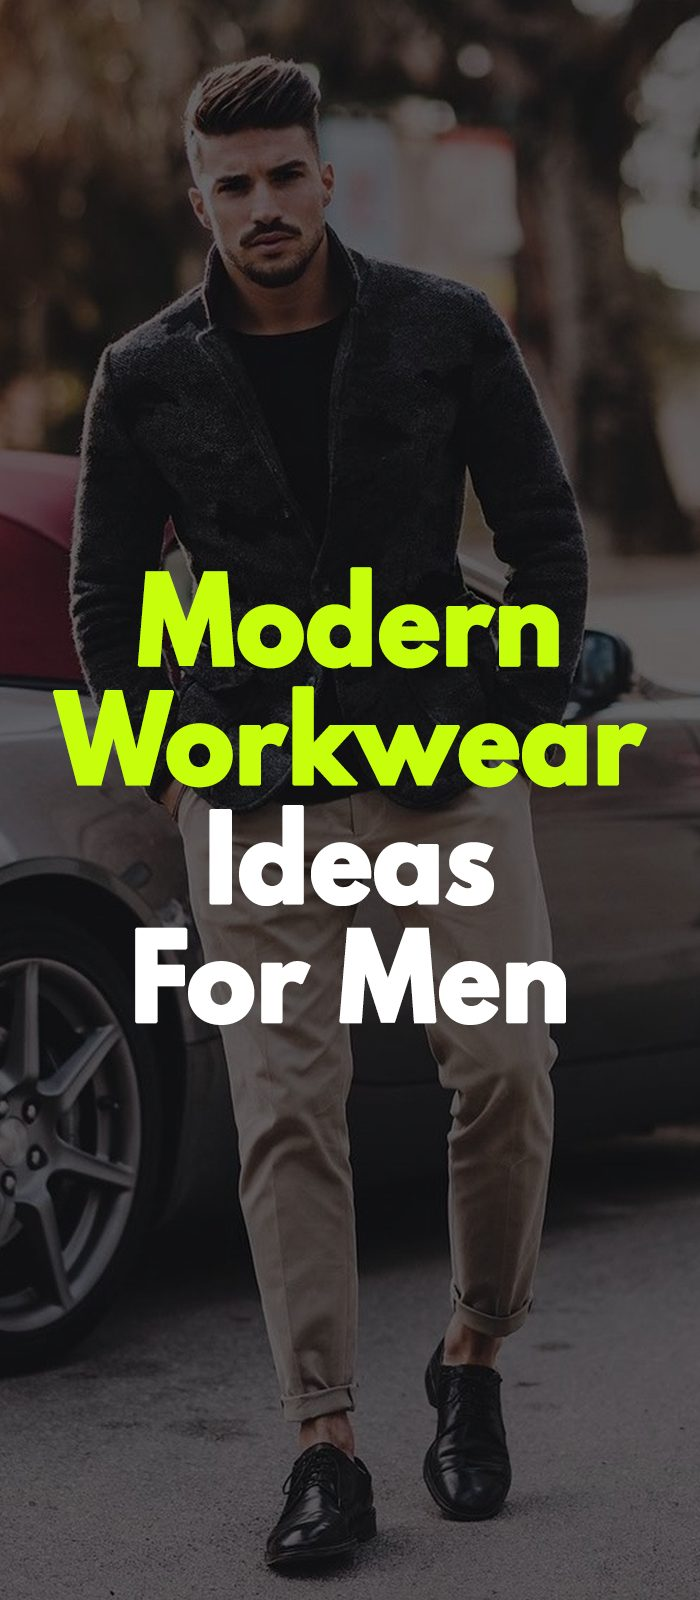 Modern Workwear Ideas For Men